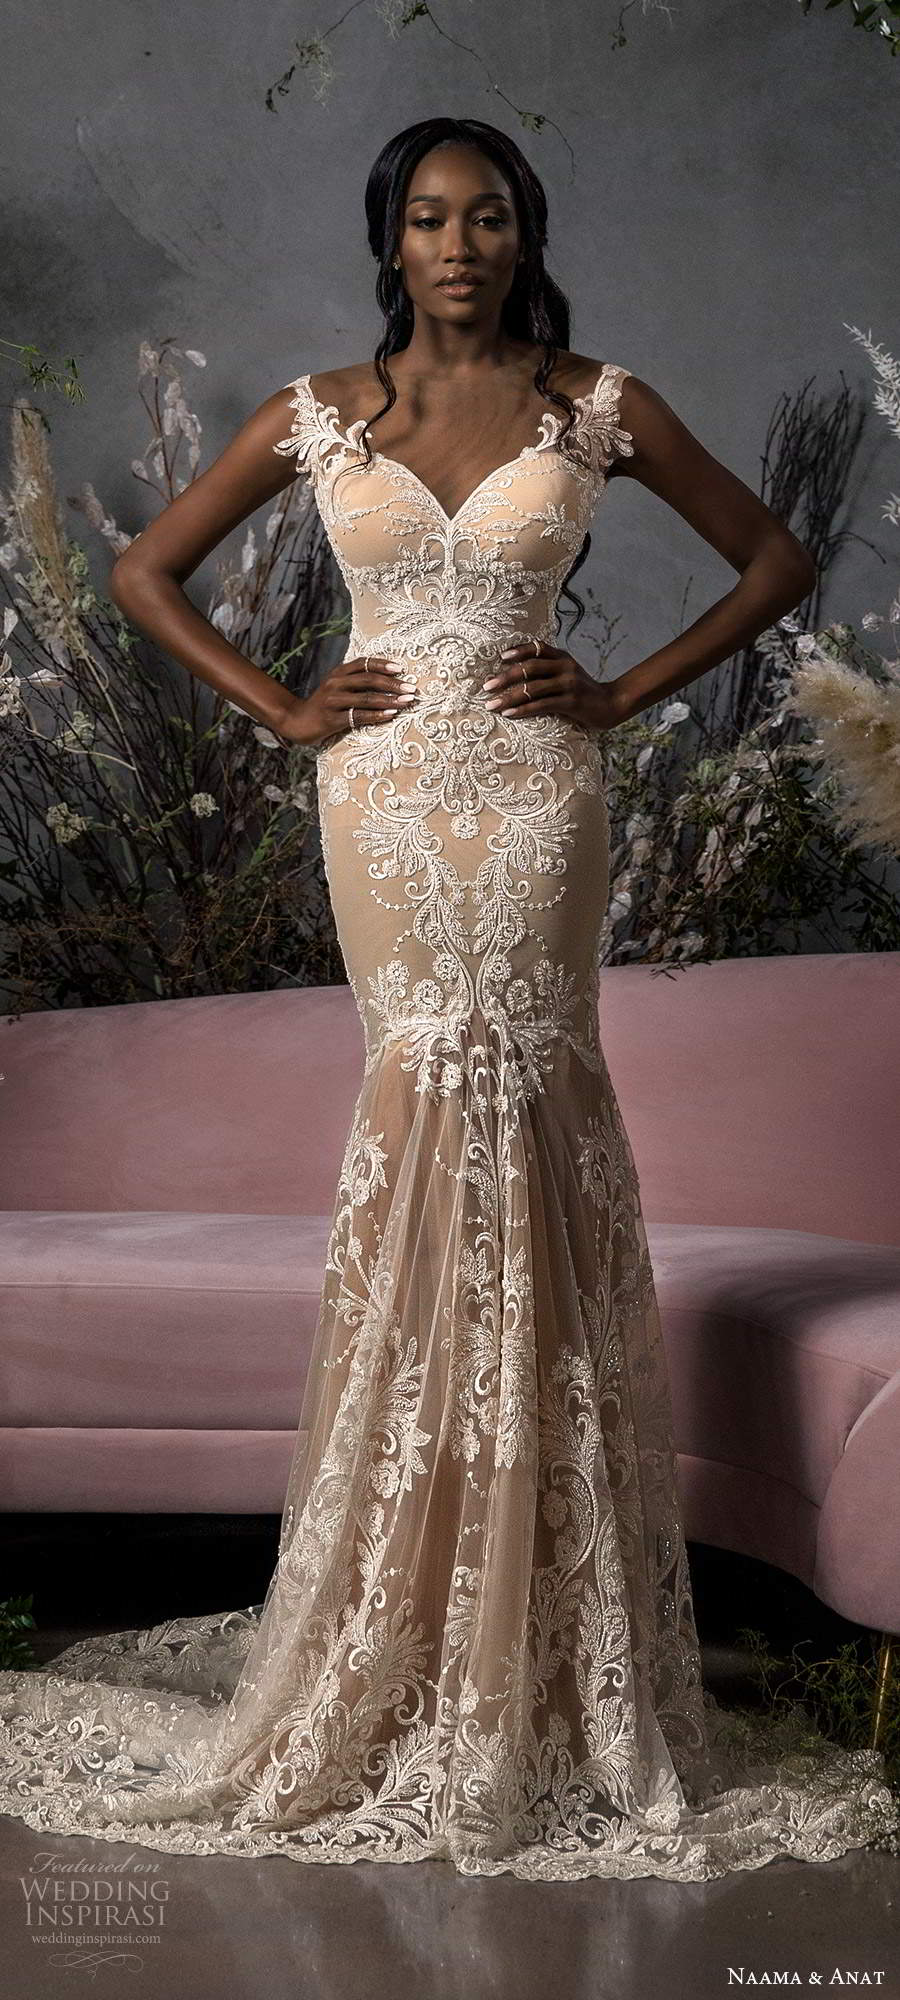 naama anat fall 2020 bridal illusion off shoulder sleeves sweetheart neckline fully embellished fit flare a line wedding dress chapel train champagne (4) mv